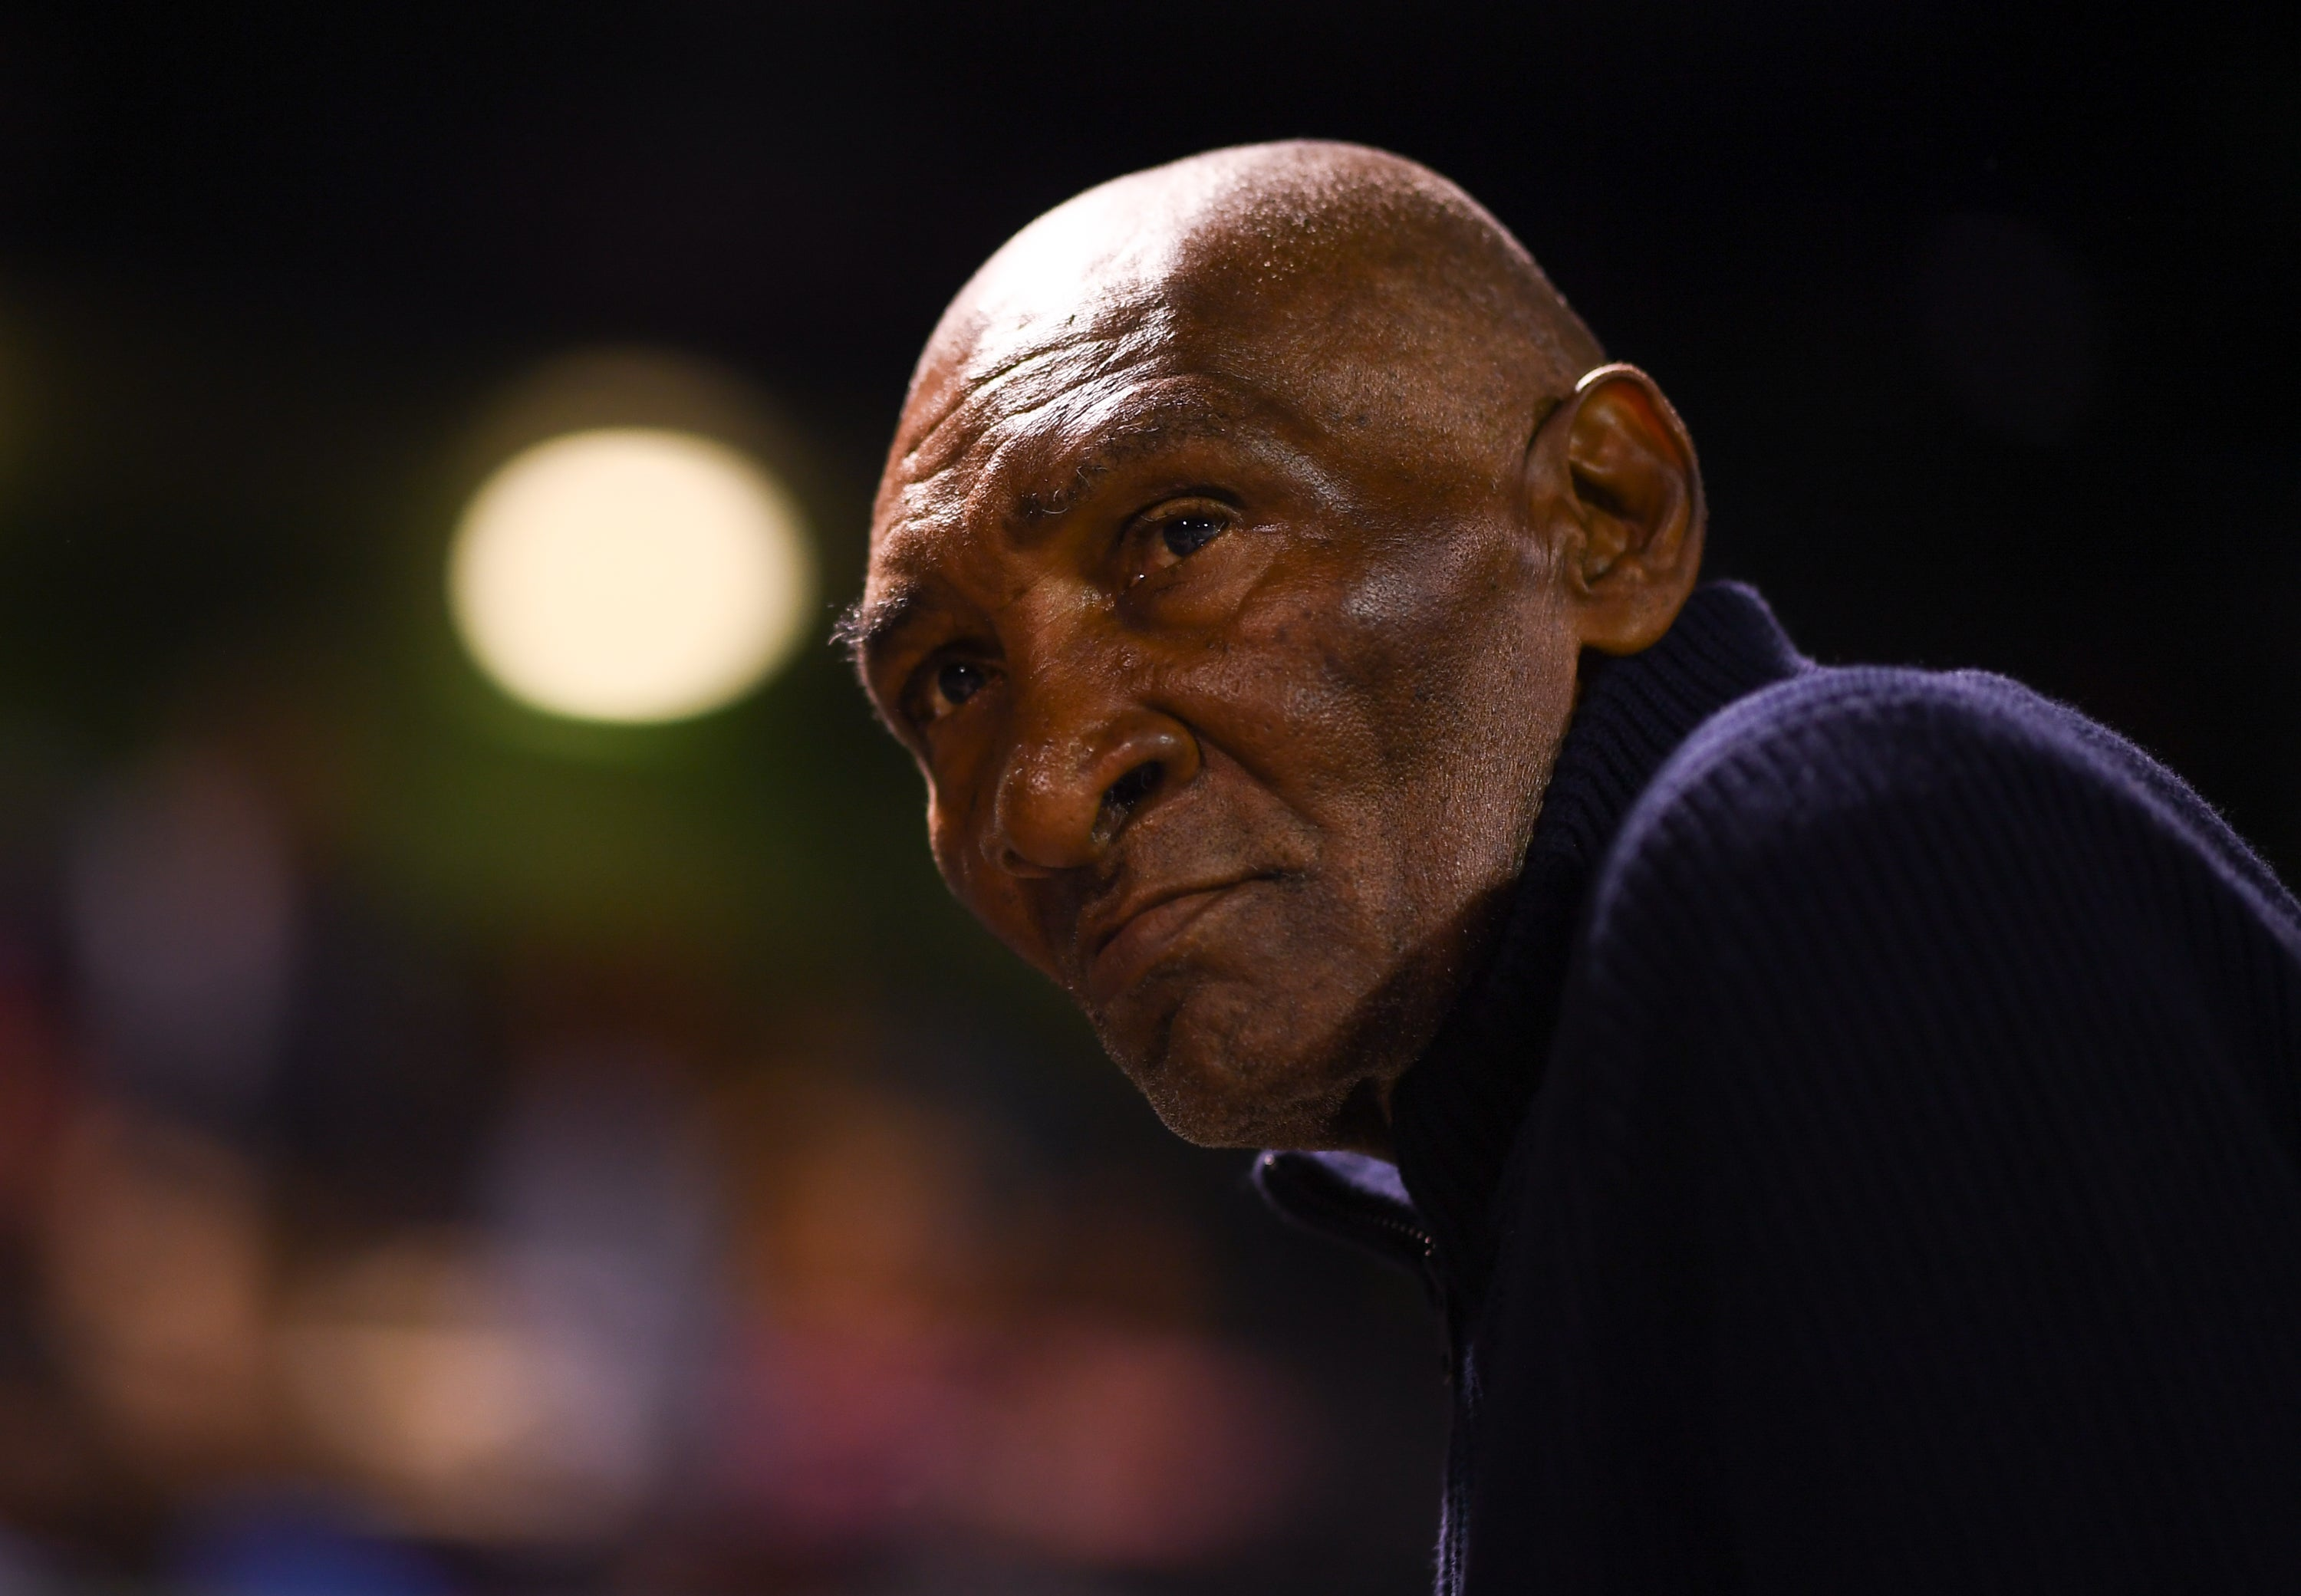 Richard Williams, Father Of Tennis Stars Venus And Serena, Files For Divorce